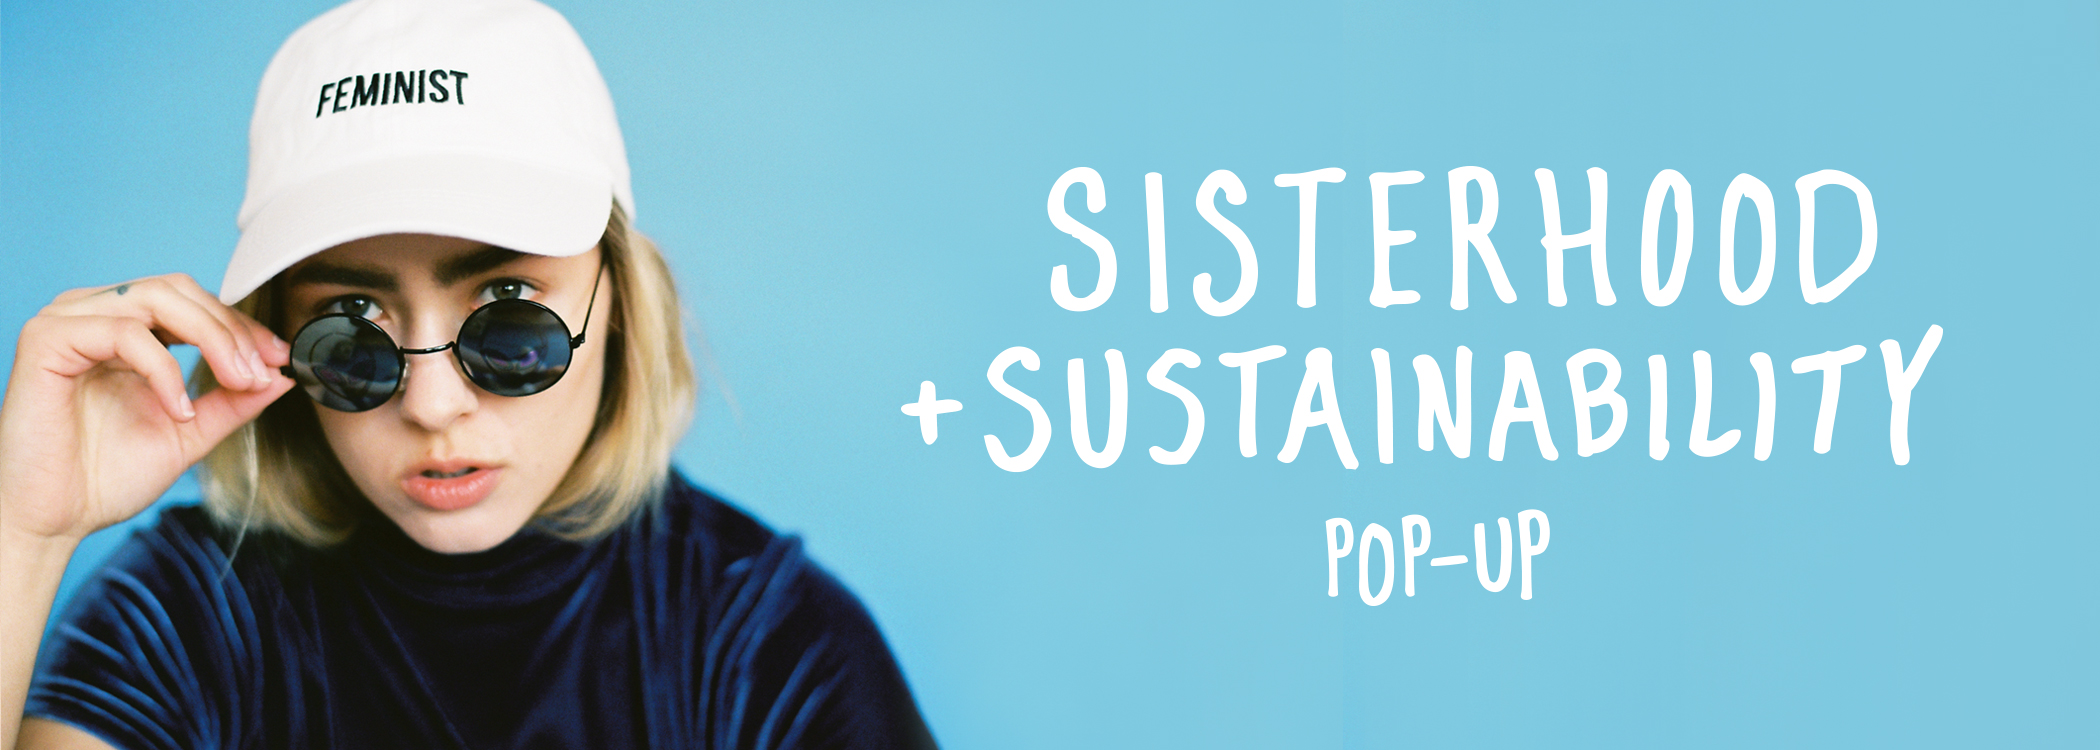 moth-oddities-styling-services-my-sister-sisterhood-and-sustainability-pop-up-1.jpg